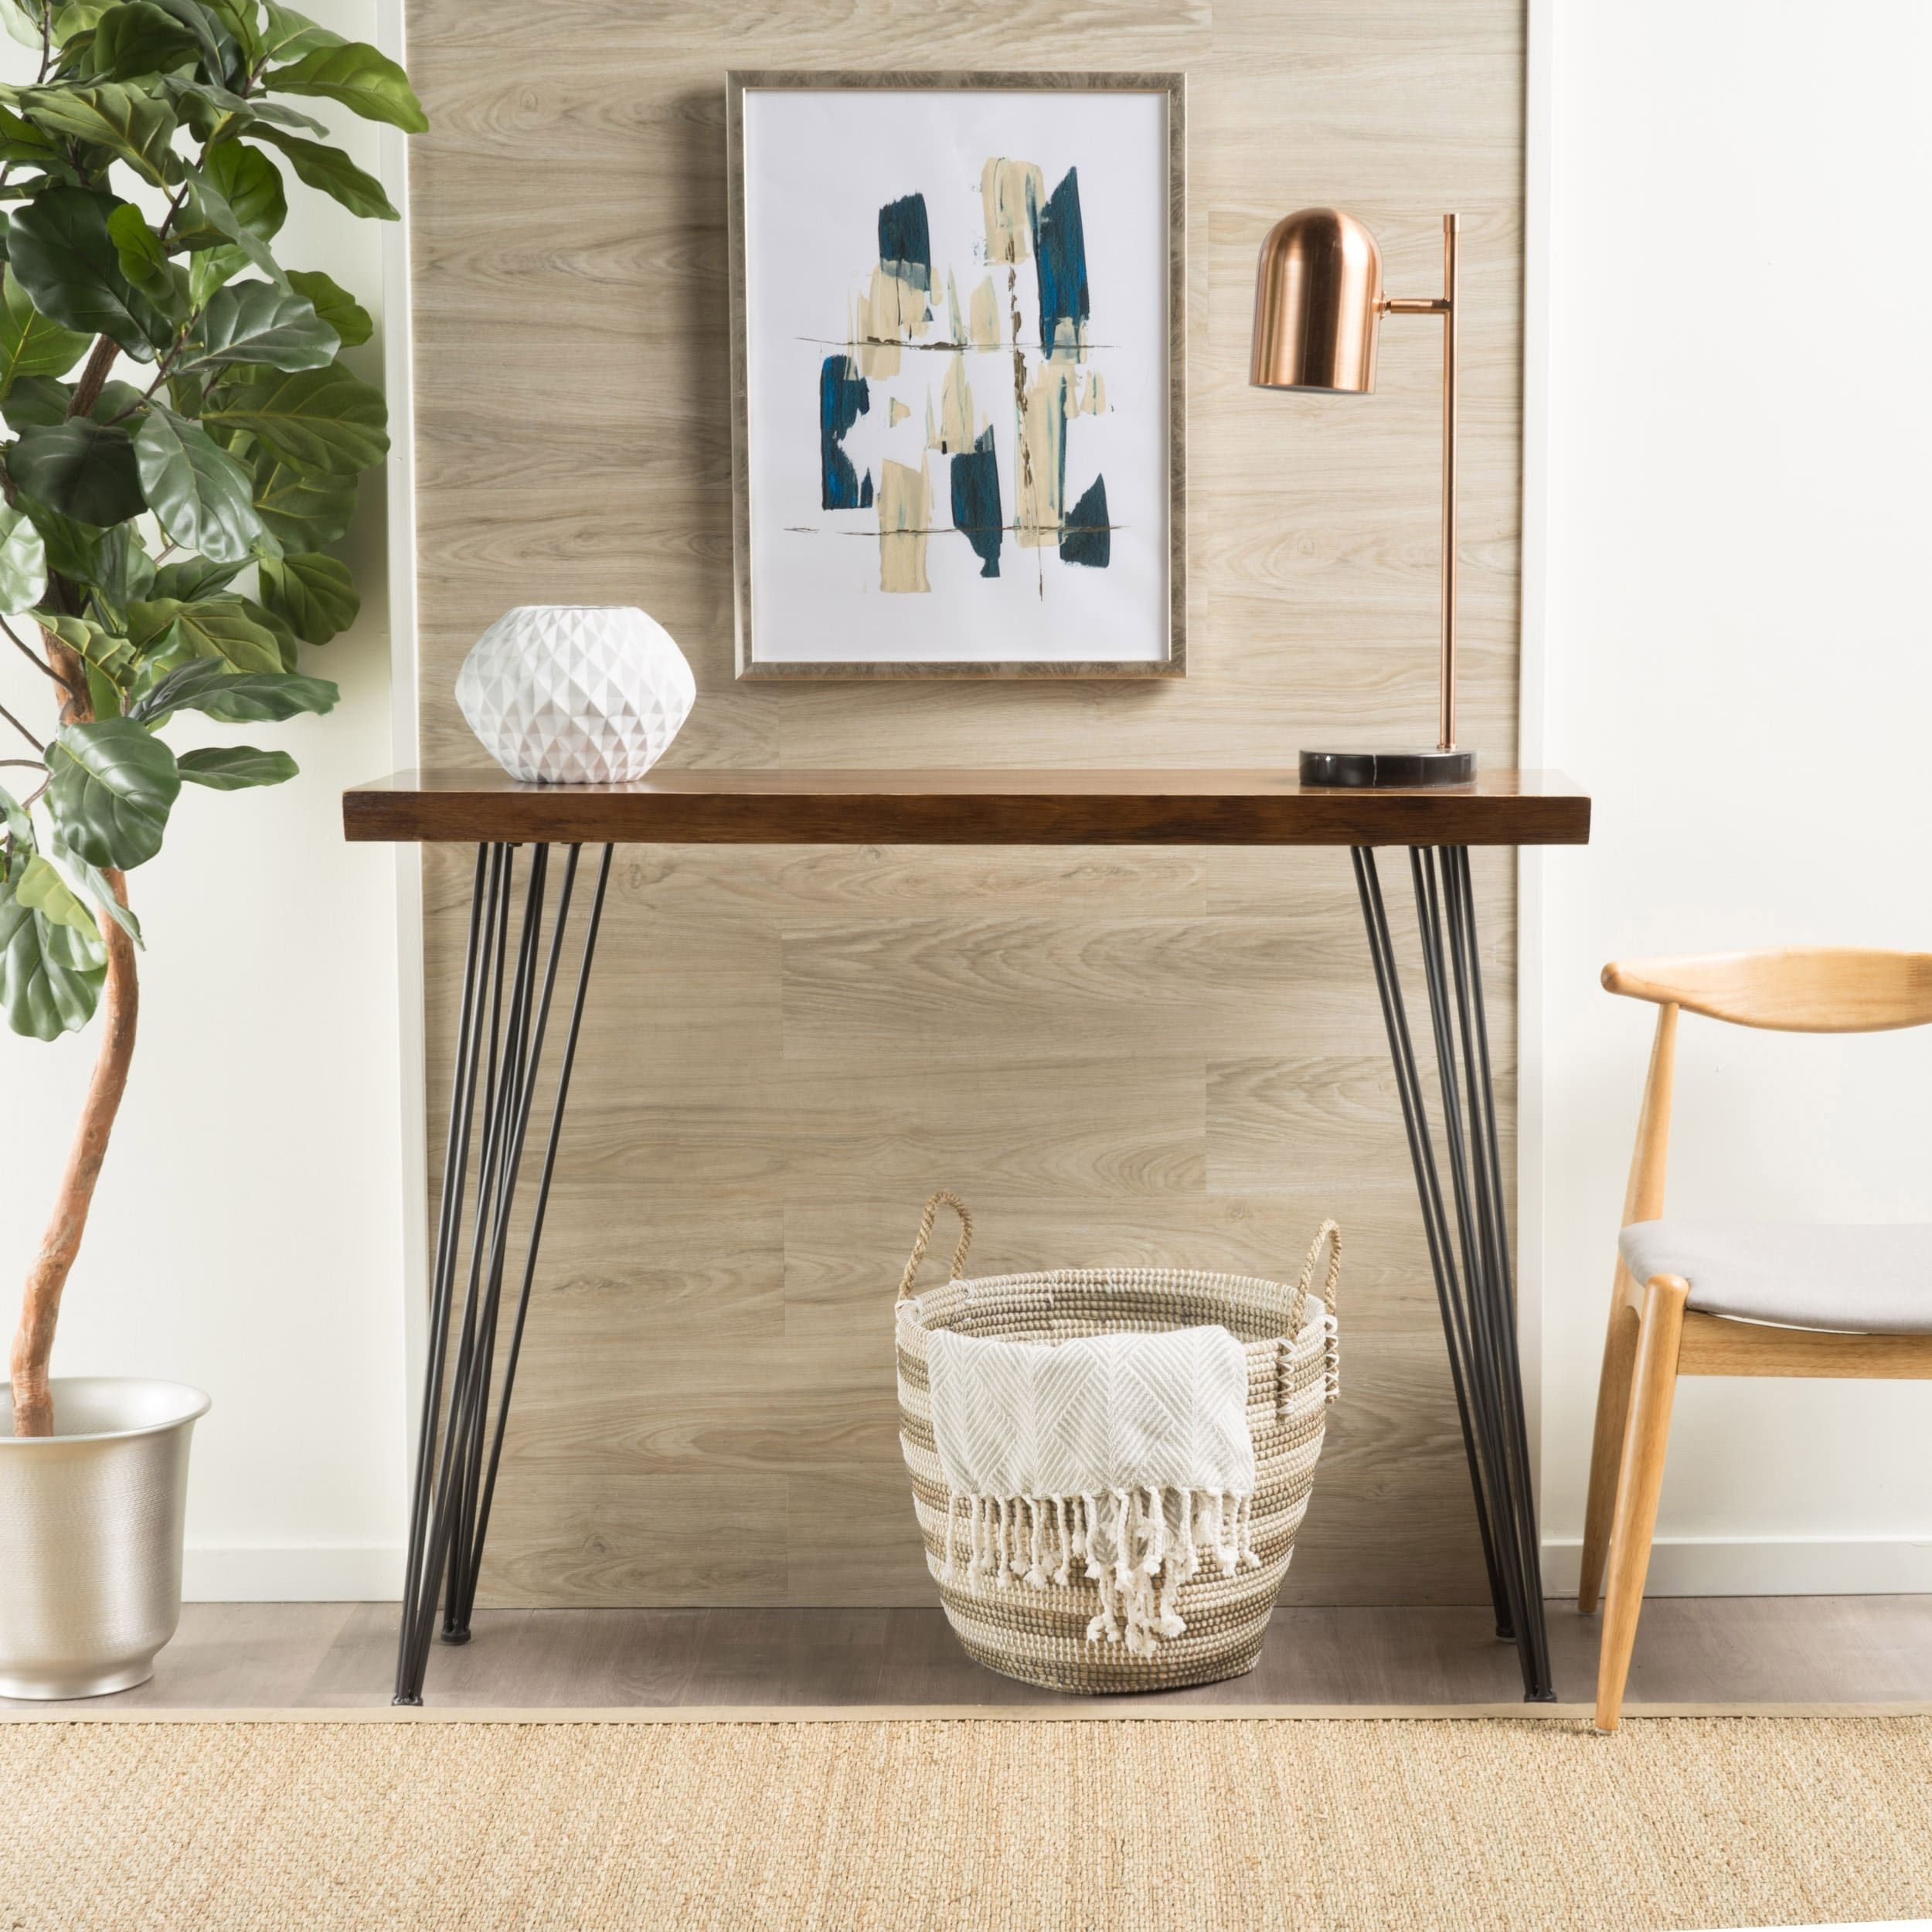 Remington natural wood live edge console table by christopher knight